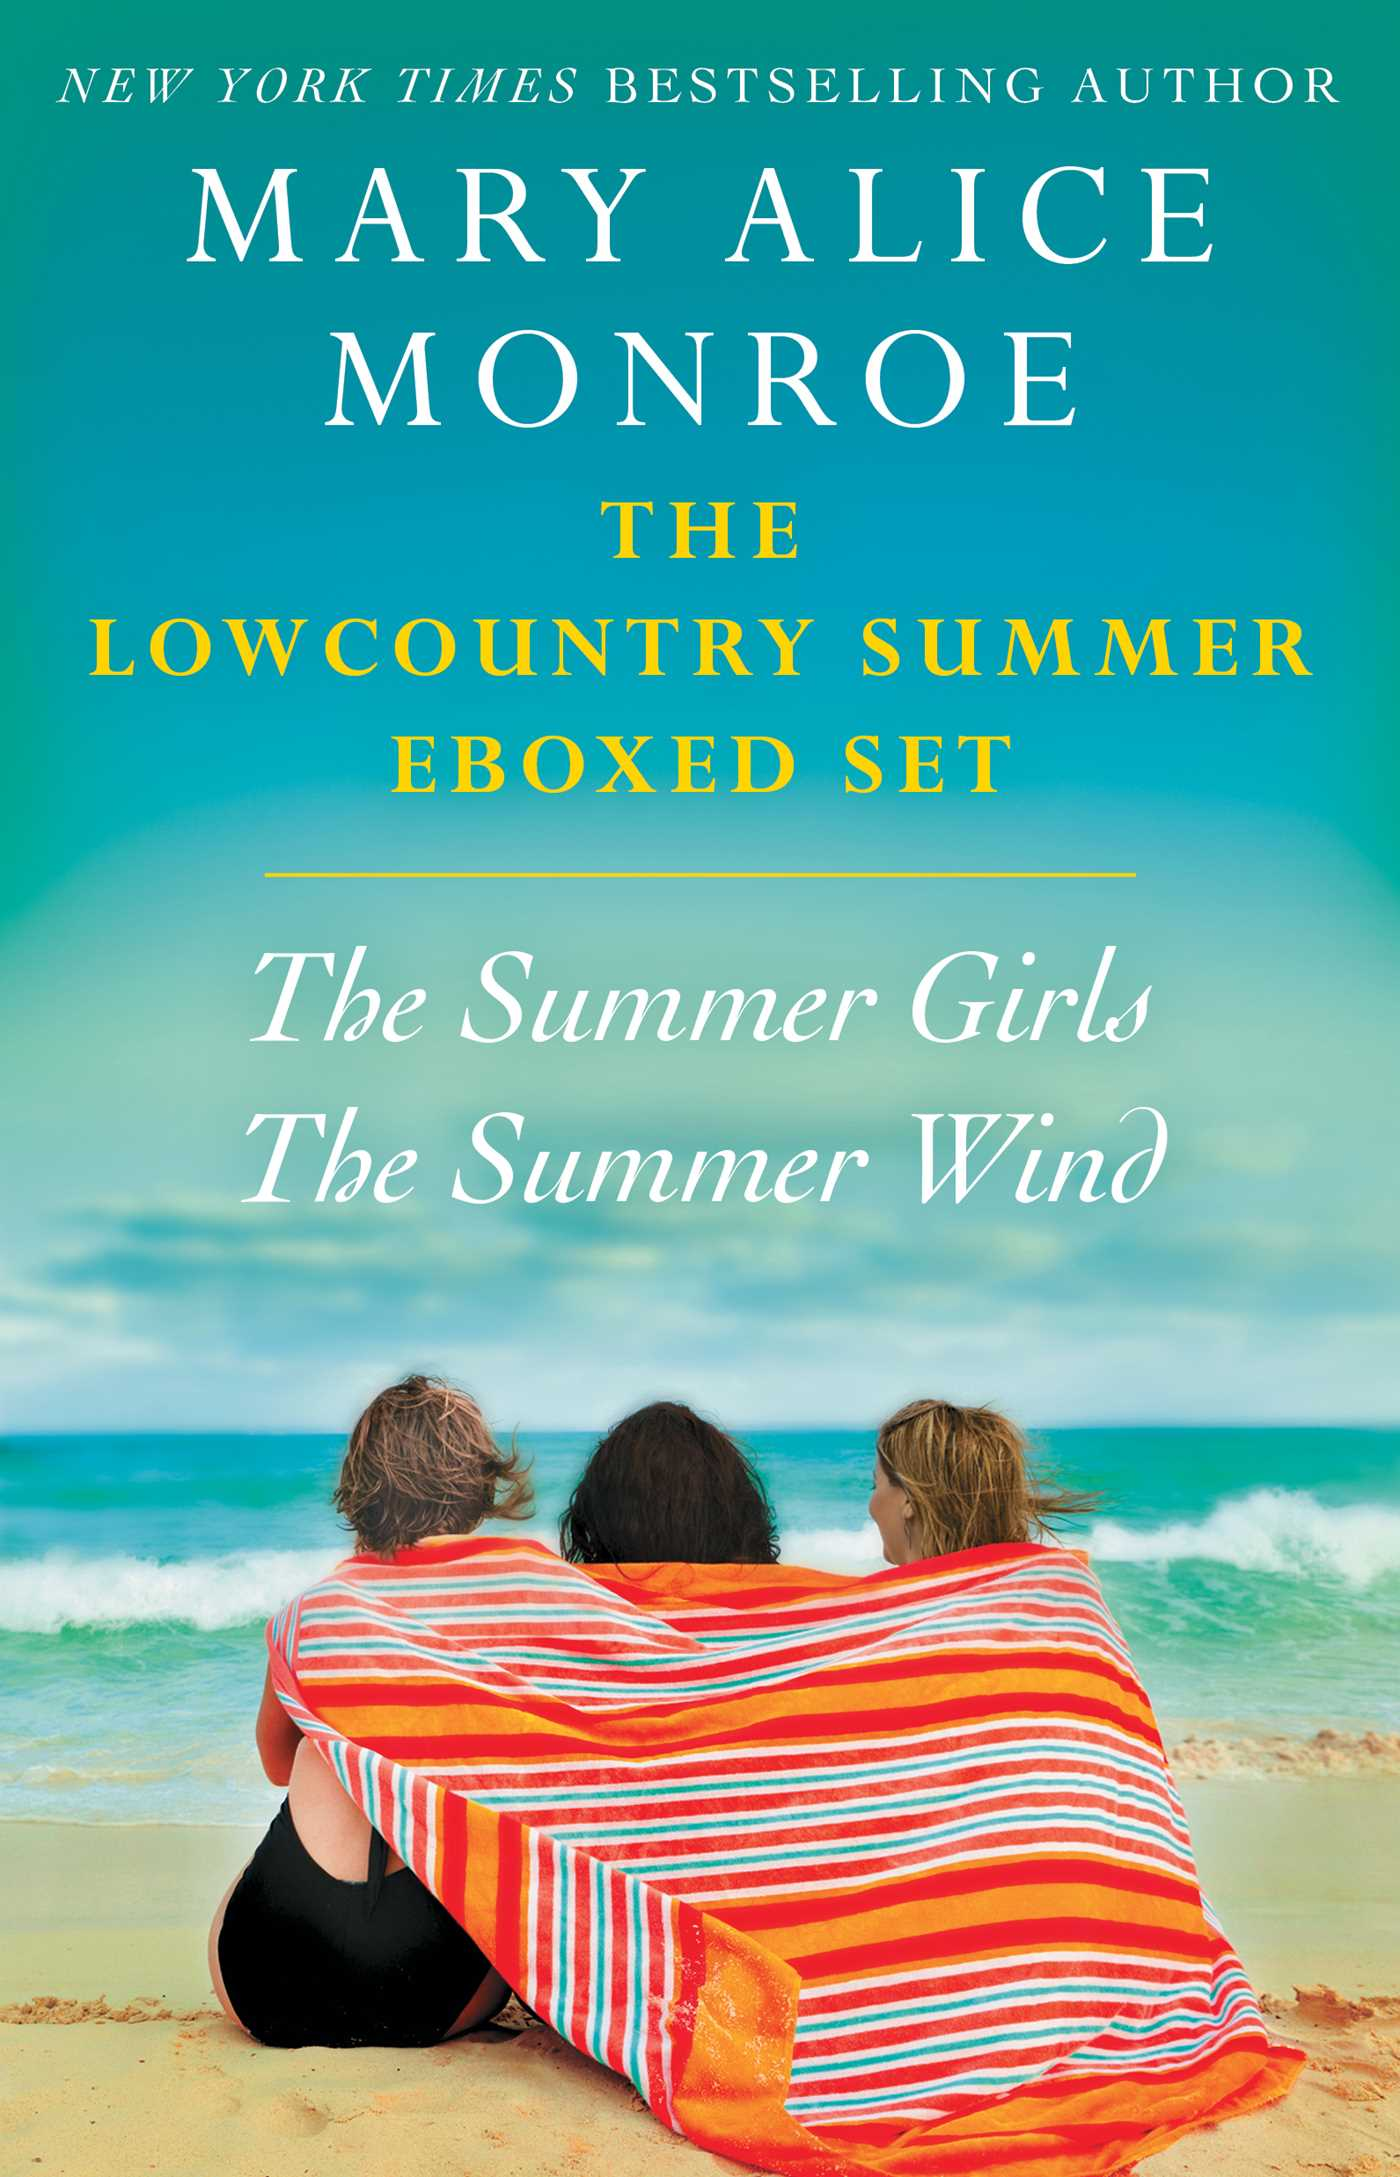 The Lowcountry Summer eBoxed Set The Summer Girls and The Summer Wind